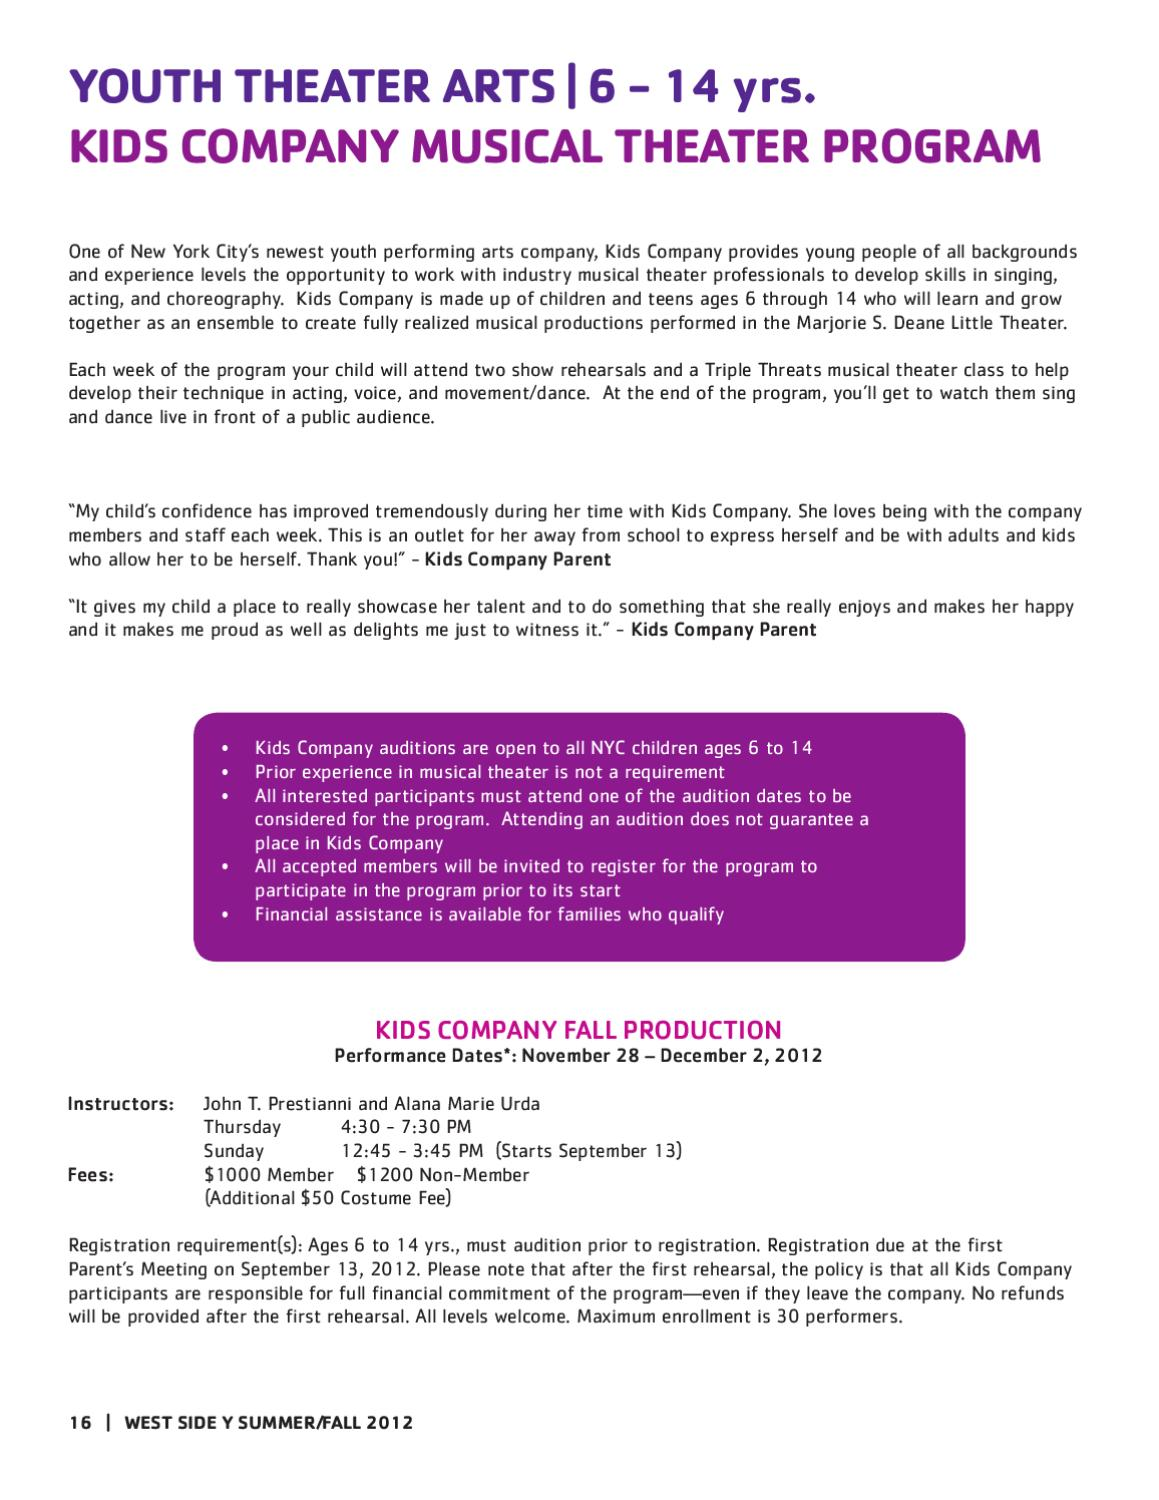 Really 16 Is Appropriate Age To Allow >> West Side Youth And Family Program Guide By New York City S Ymca Issuu